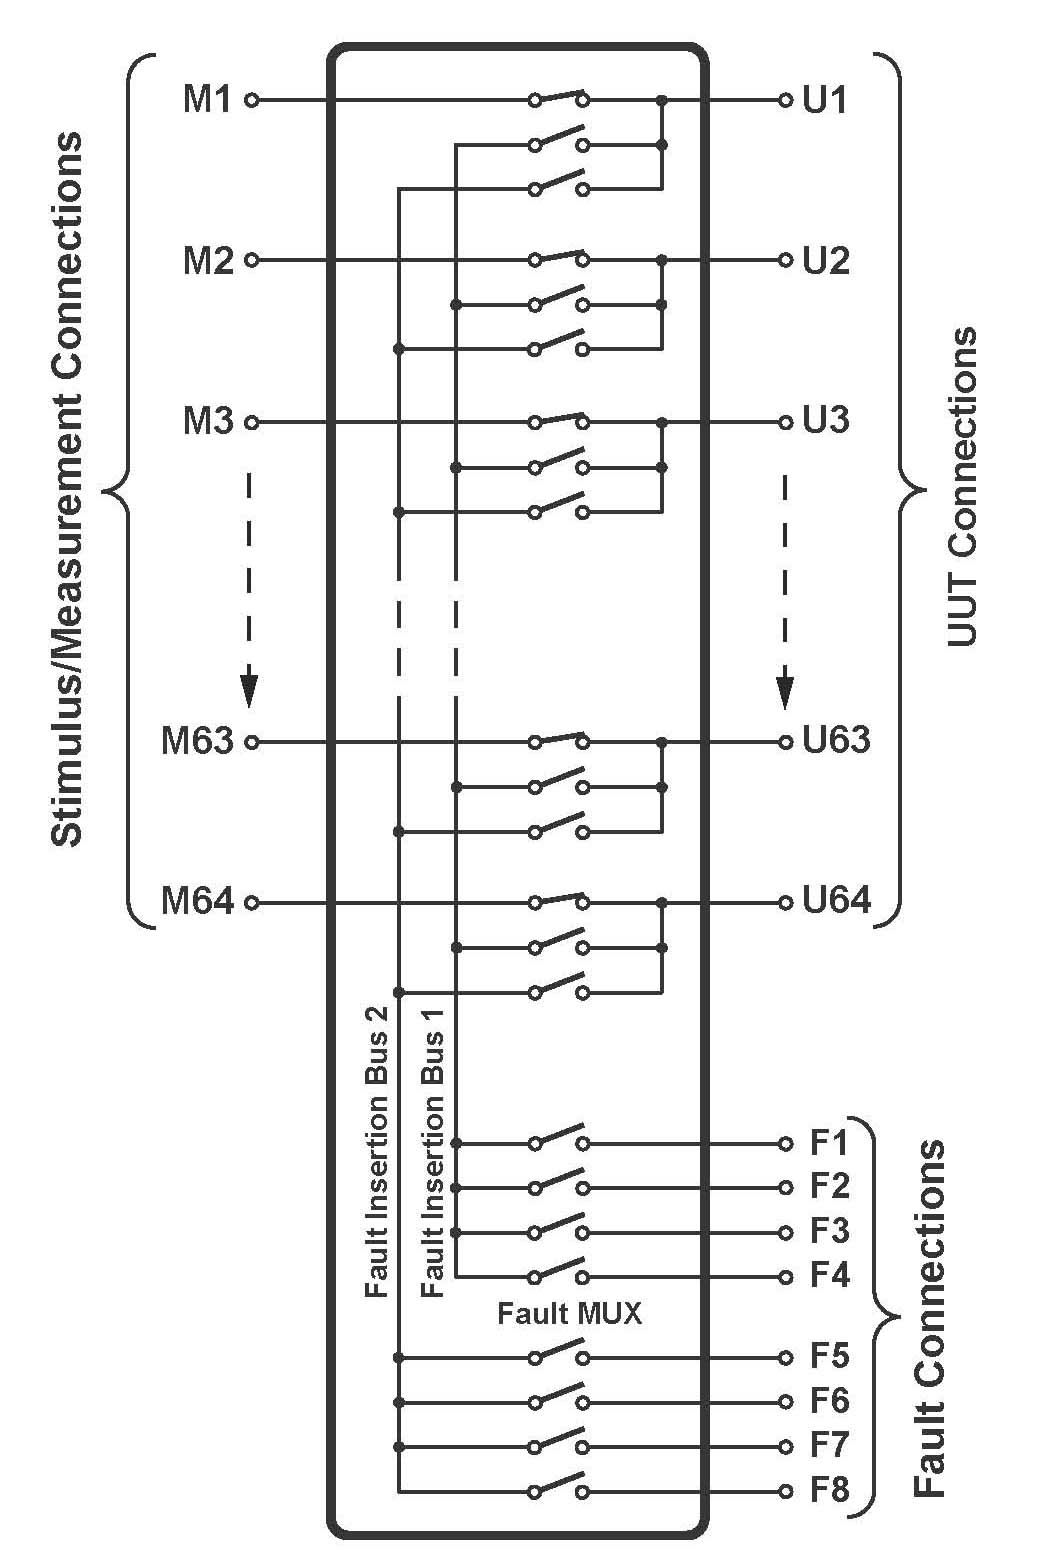 fault insertion module diagram